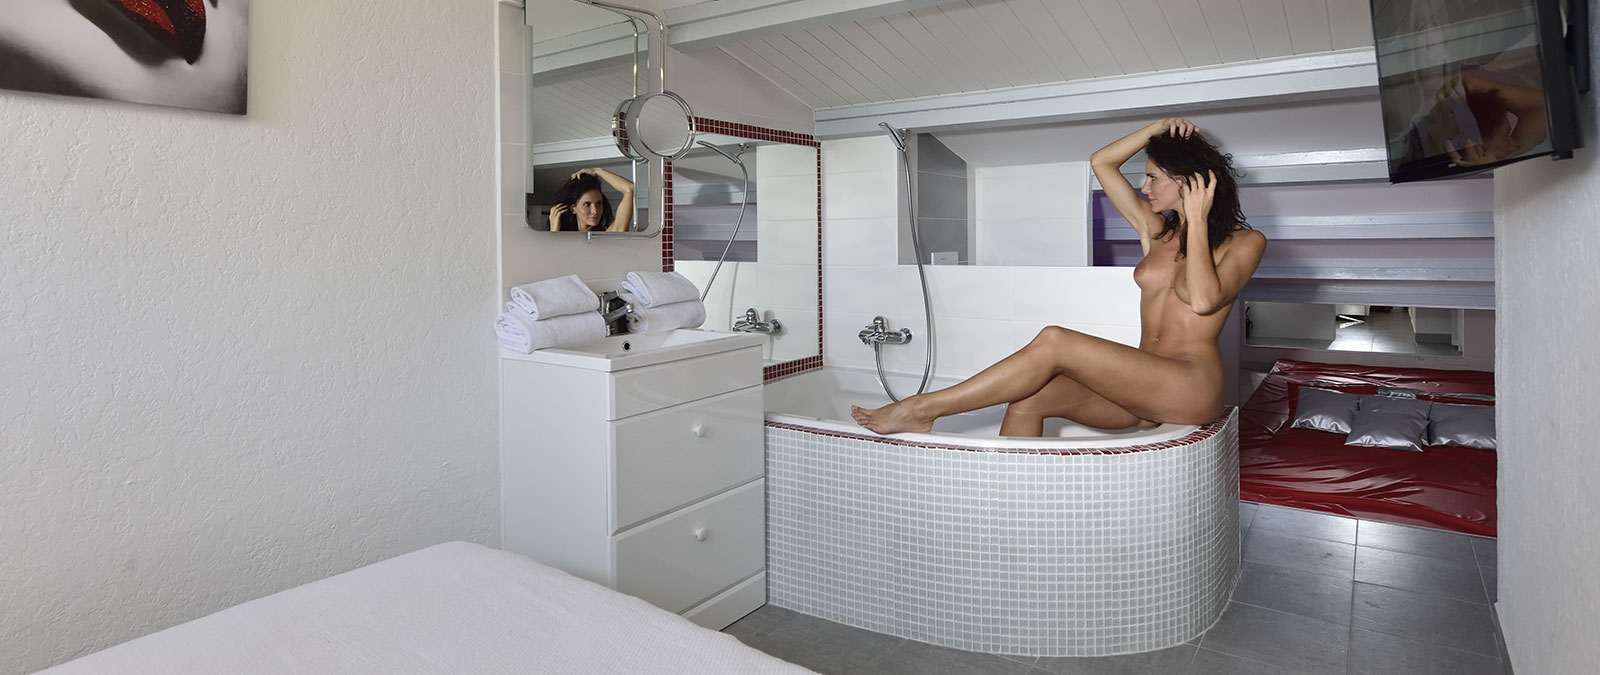 Parental suite with bath for a libertine rental La Coquine